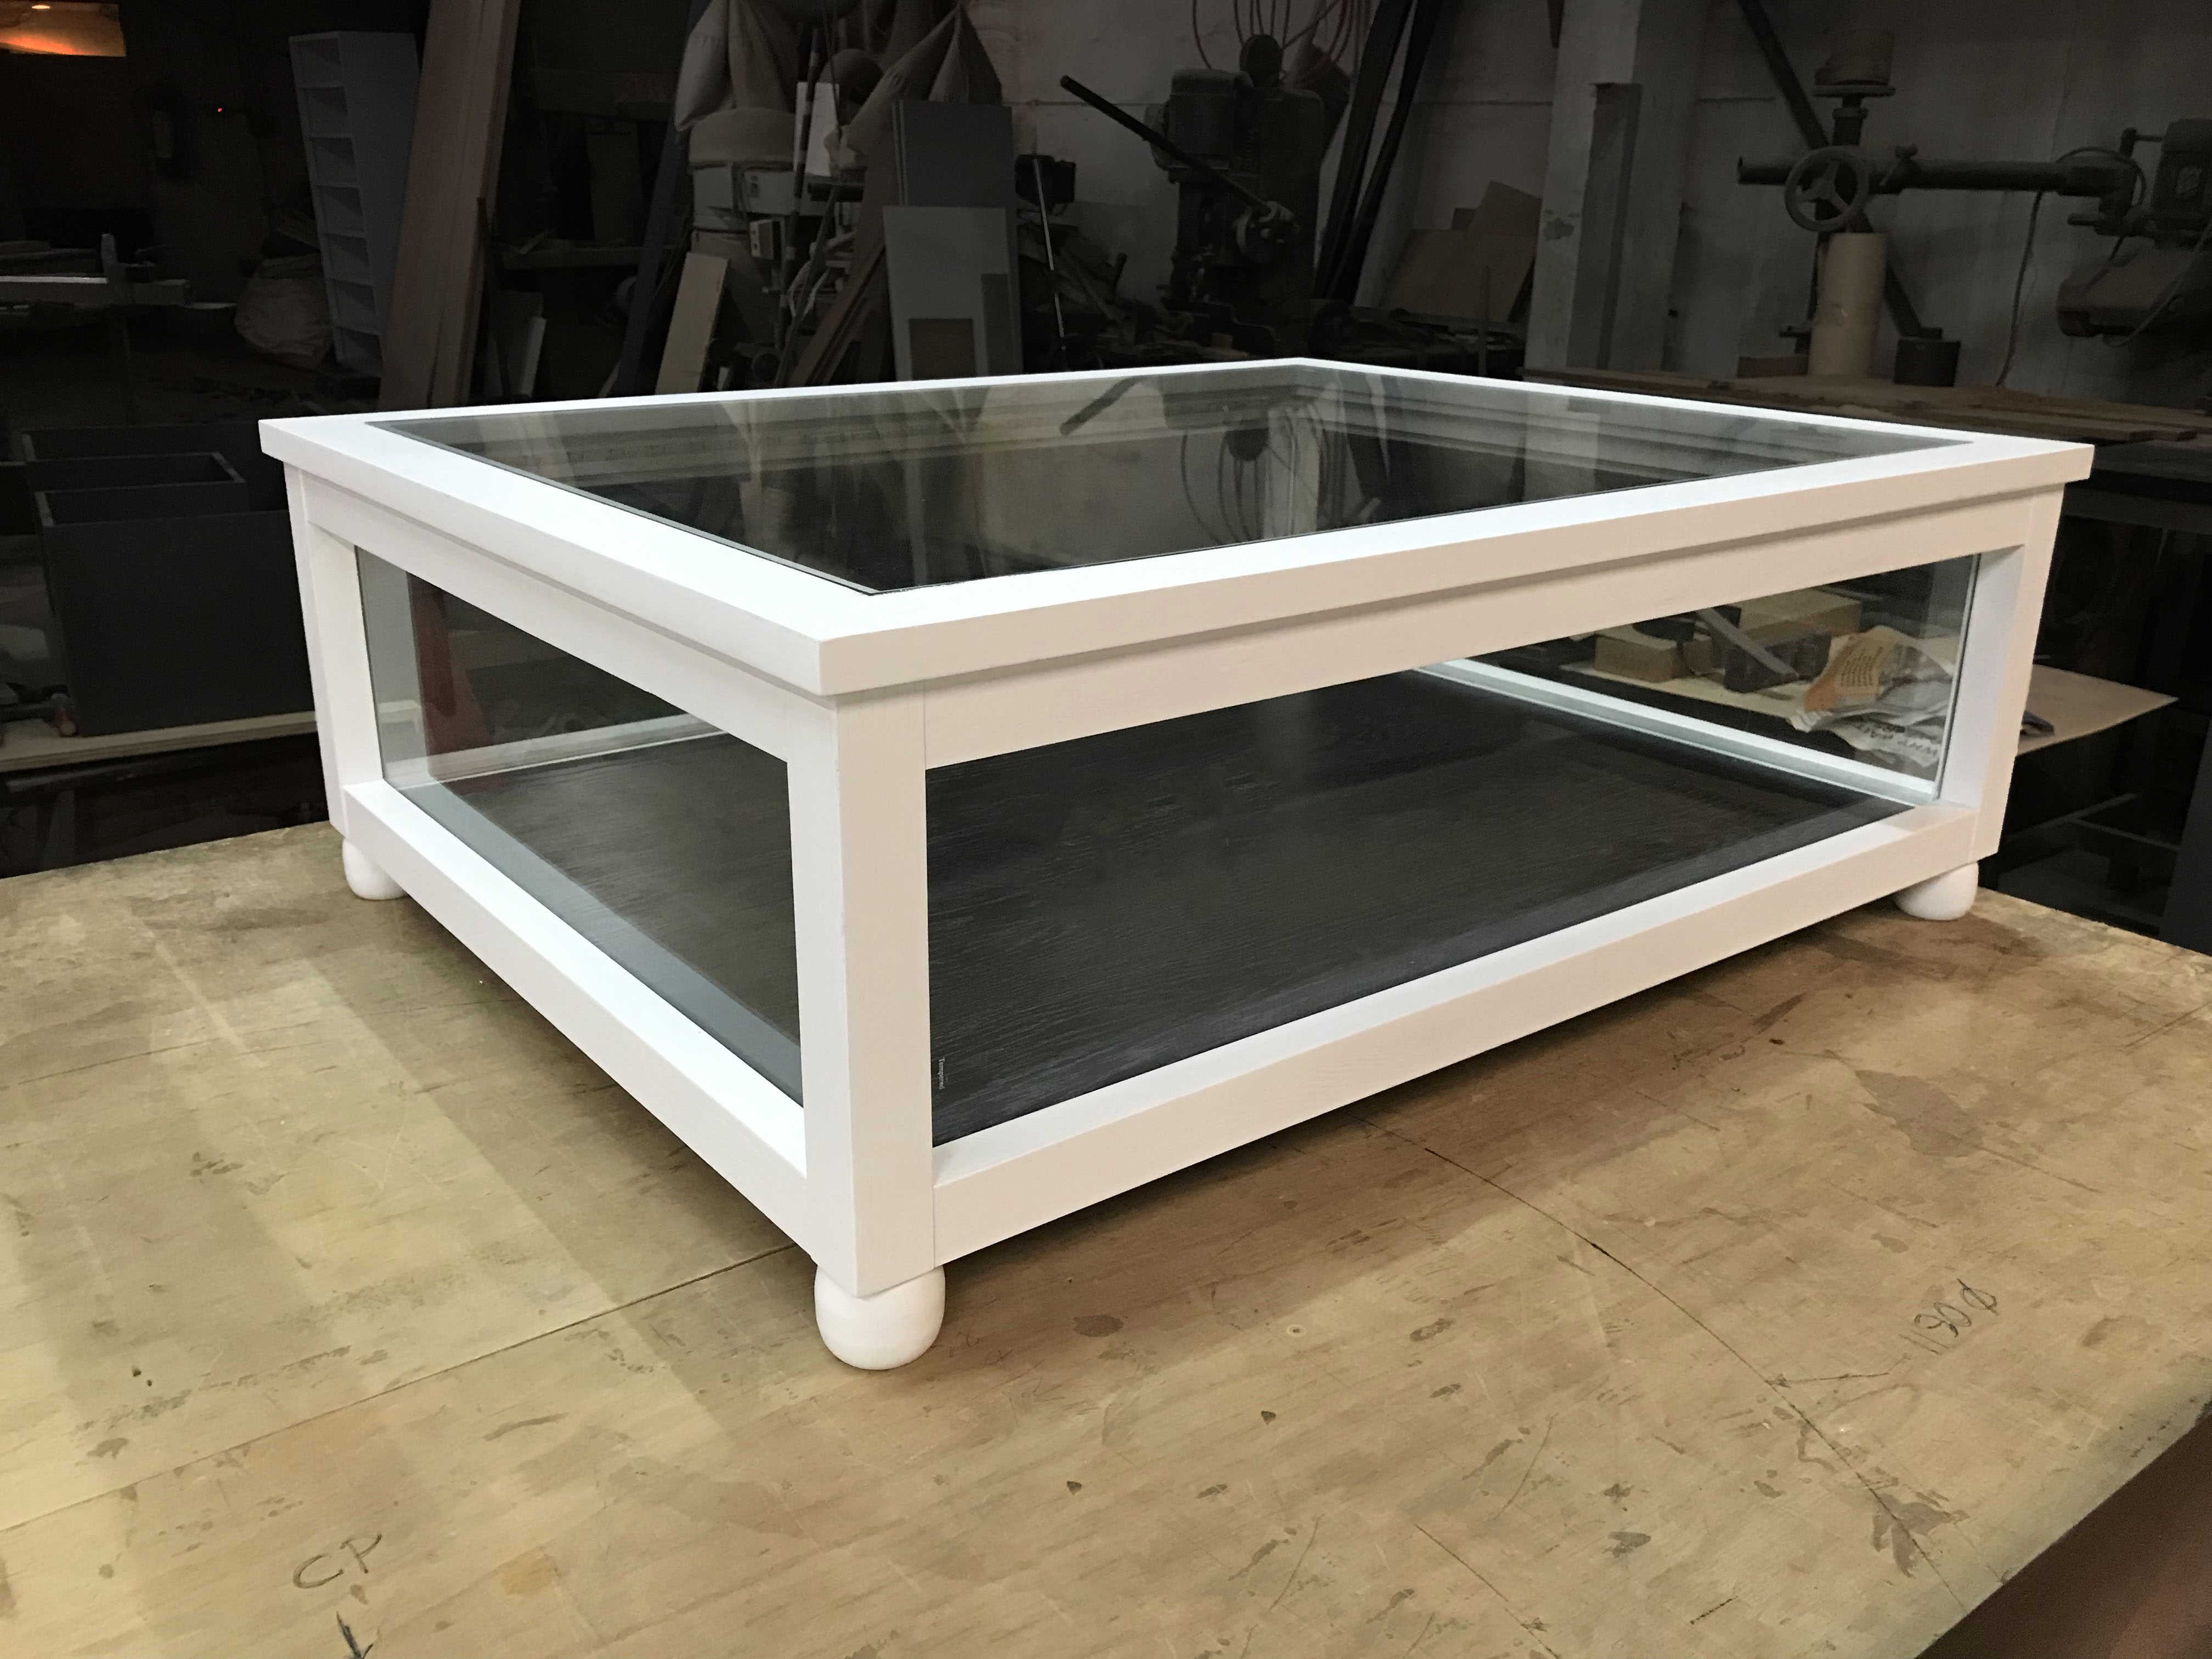 Solid Wood Display Table Coffee Table For Collectibles Amp Models Like Star Wars Millenium Falcon With Tempered Glass And Led Bar Lights Customizable Size And Colour Made In Singapore Handmade [ 3024 x 4032 Pixel ]